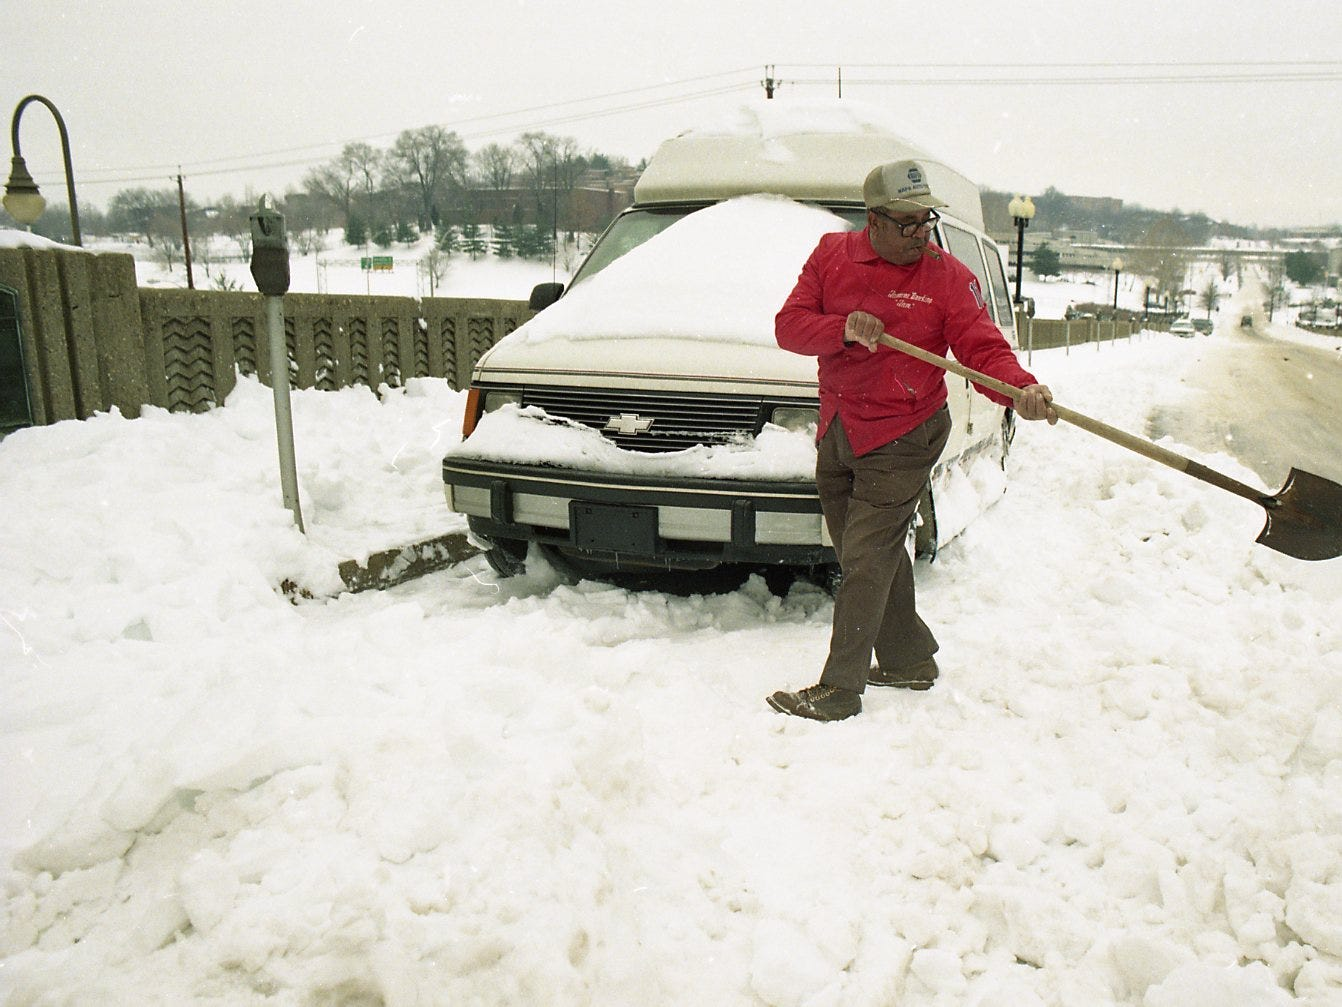 Abe Burton of Knoxville digs snow from around a mini-van parked on the Church Avenue viaduct in February 1996. Although the van doesn't belong to Burton, he said he had dug out his own car on the bridge and thought he would help the owner of the van.